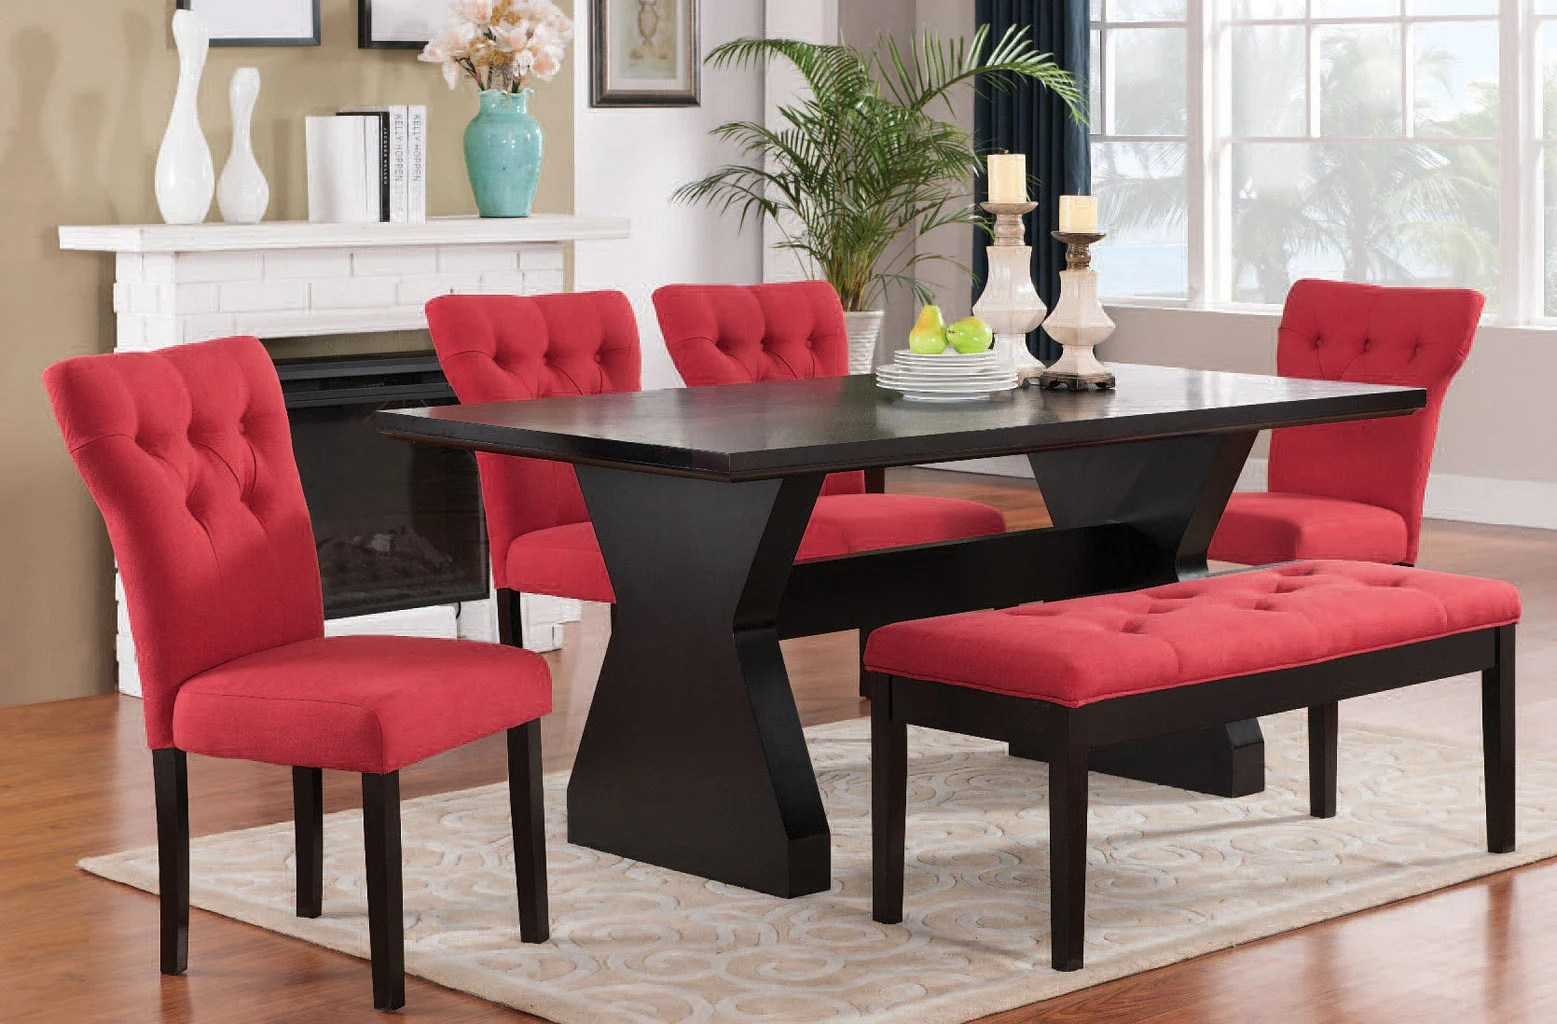 Black Dining Room Table And Chairs Effie Dining Room Set W Red Chairs